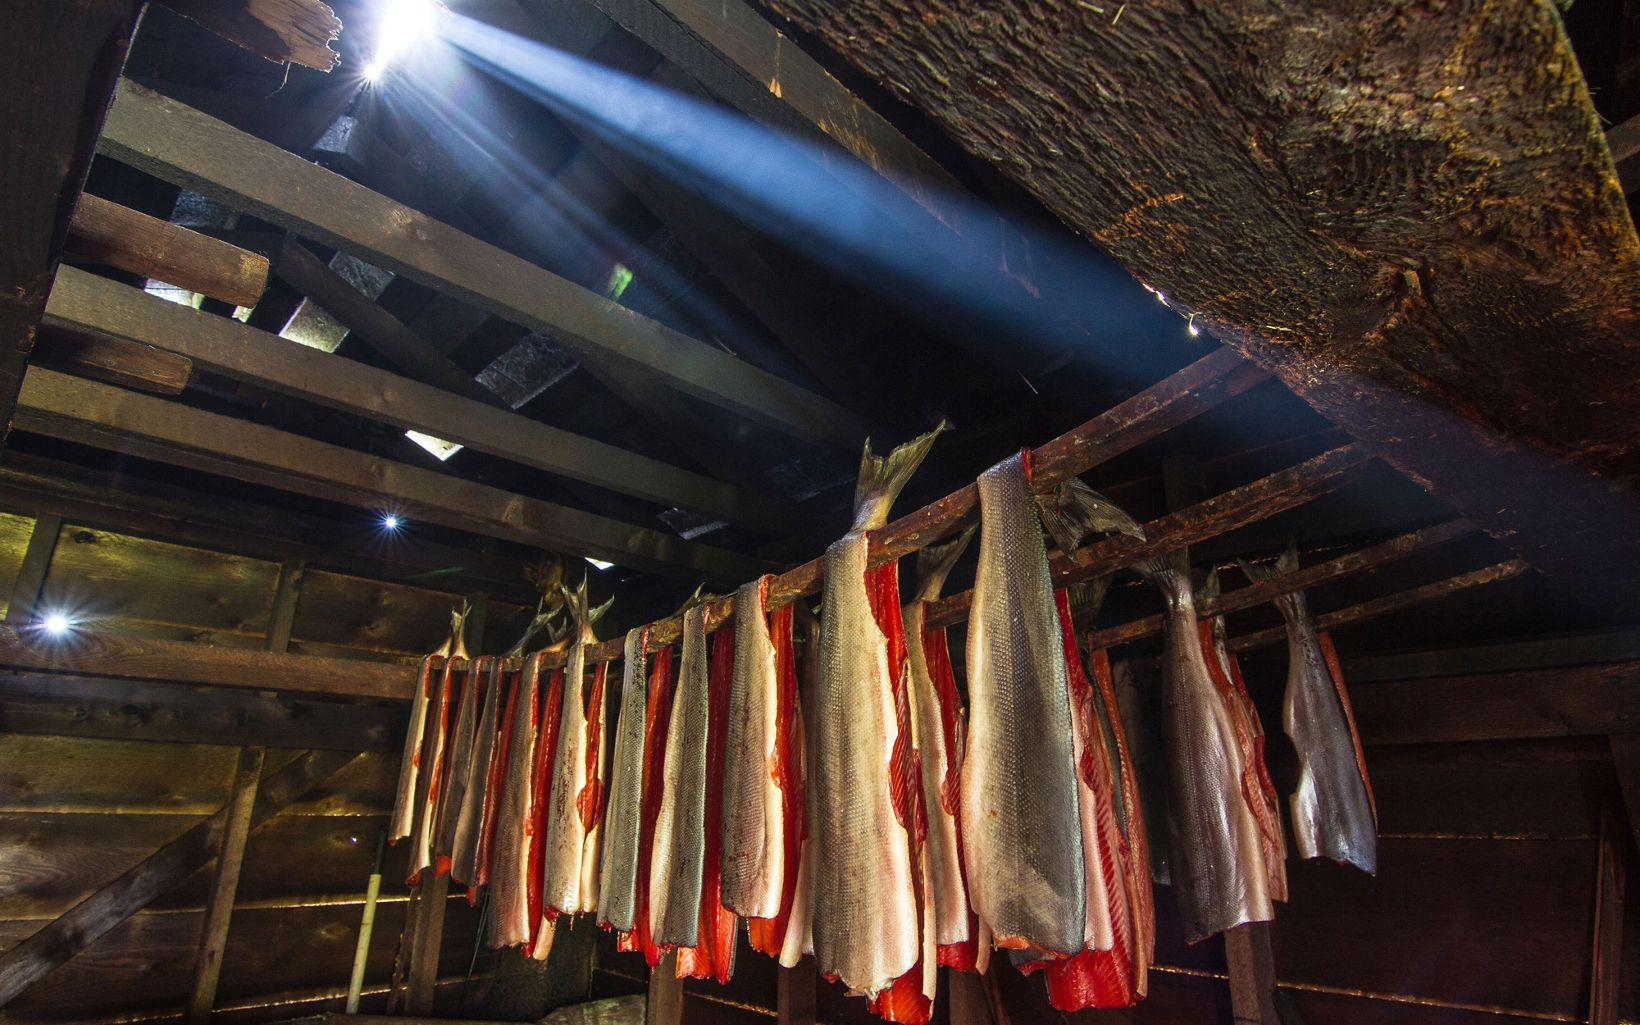 Salmon filets are prepared and hung in a smokehouse in Hydaburg on Prince of Wales Island in Southeast Alaska.